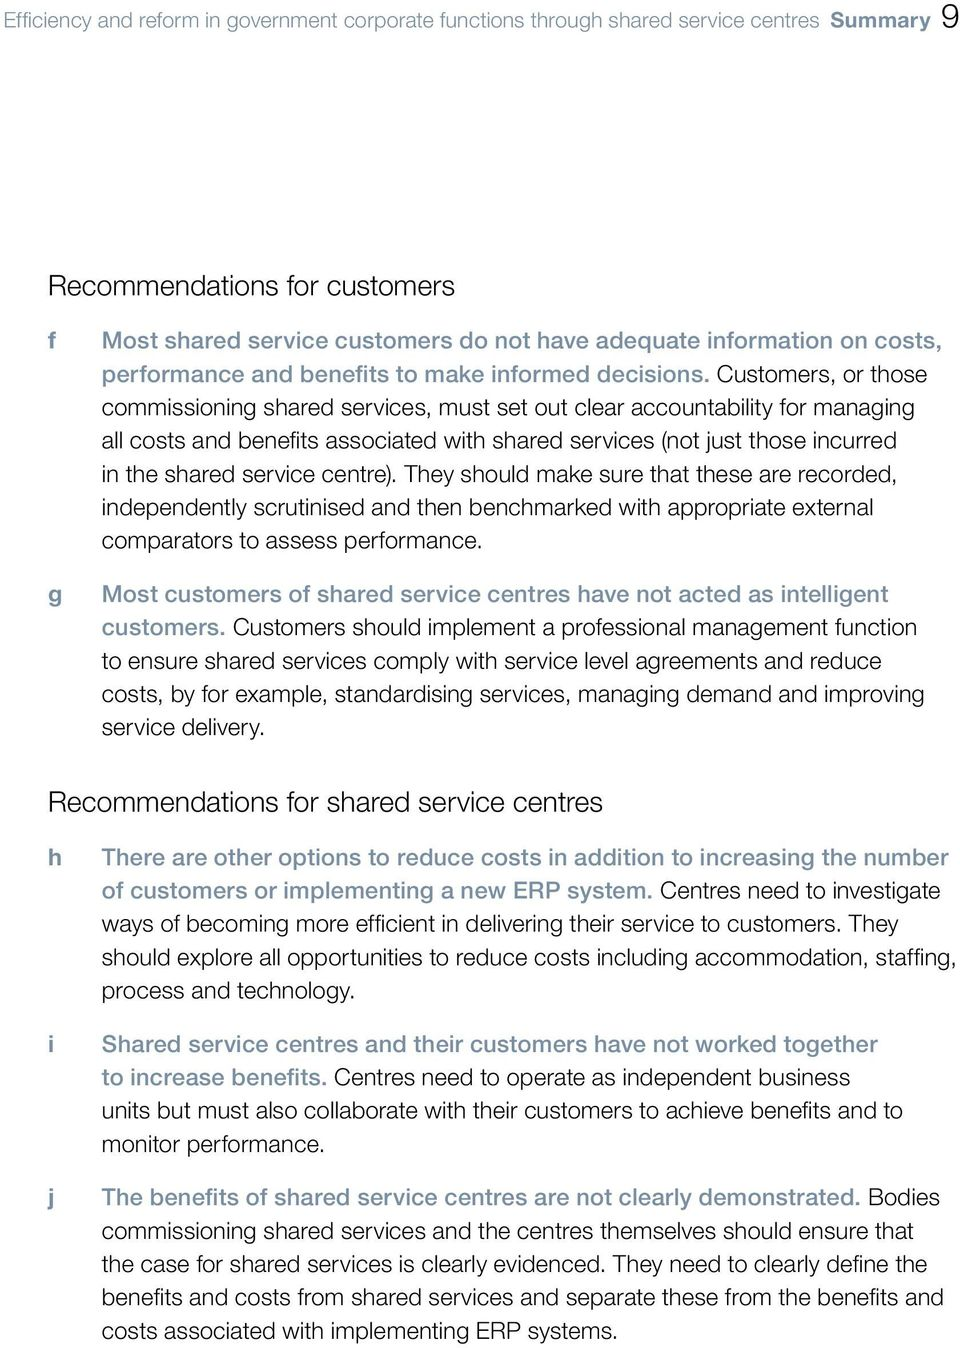 Customers, or those commissioning shared services, must set out clear accountability for managing all costs and benefits associated with shared services (not just those incurred in the shared service